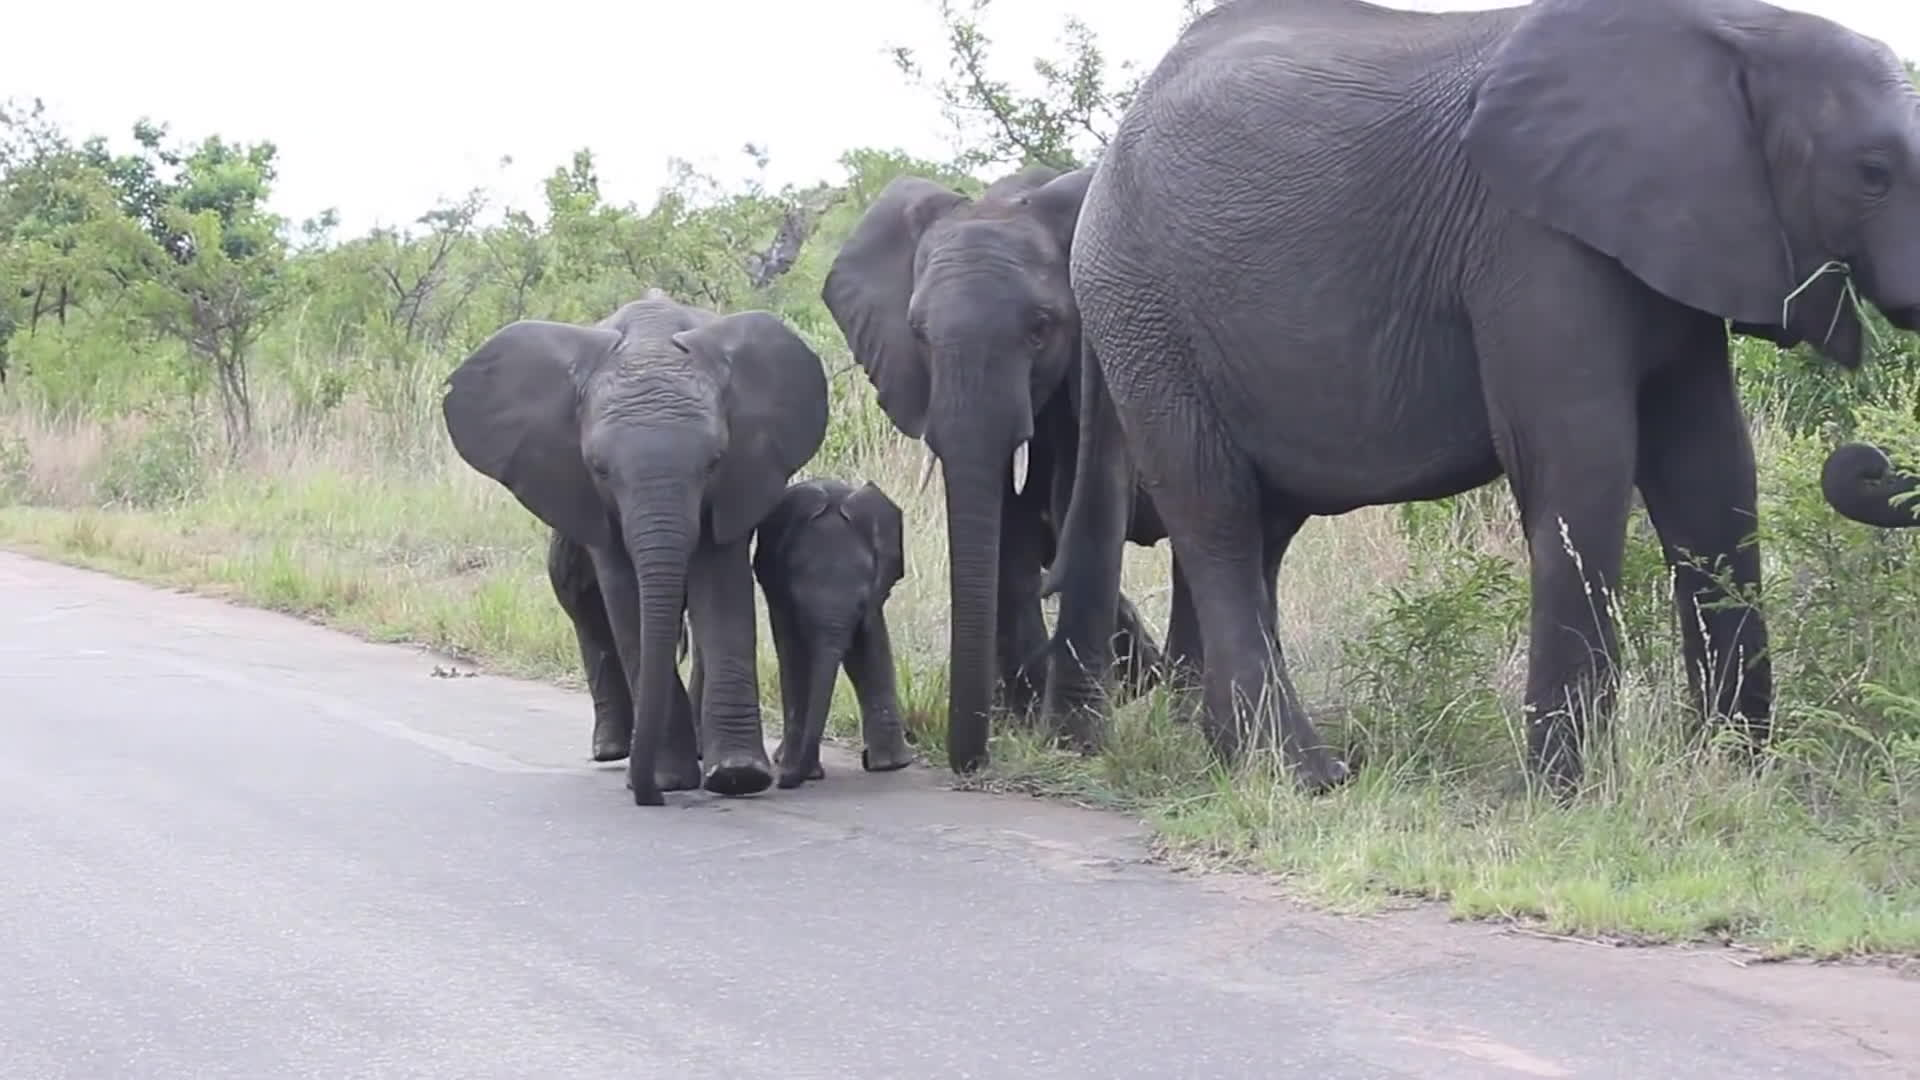 awwducational, funny, safari, Baby Elephant struggling with this long thing on his face... Cuteness overload!! GIFs